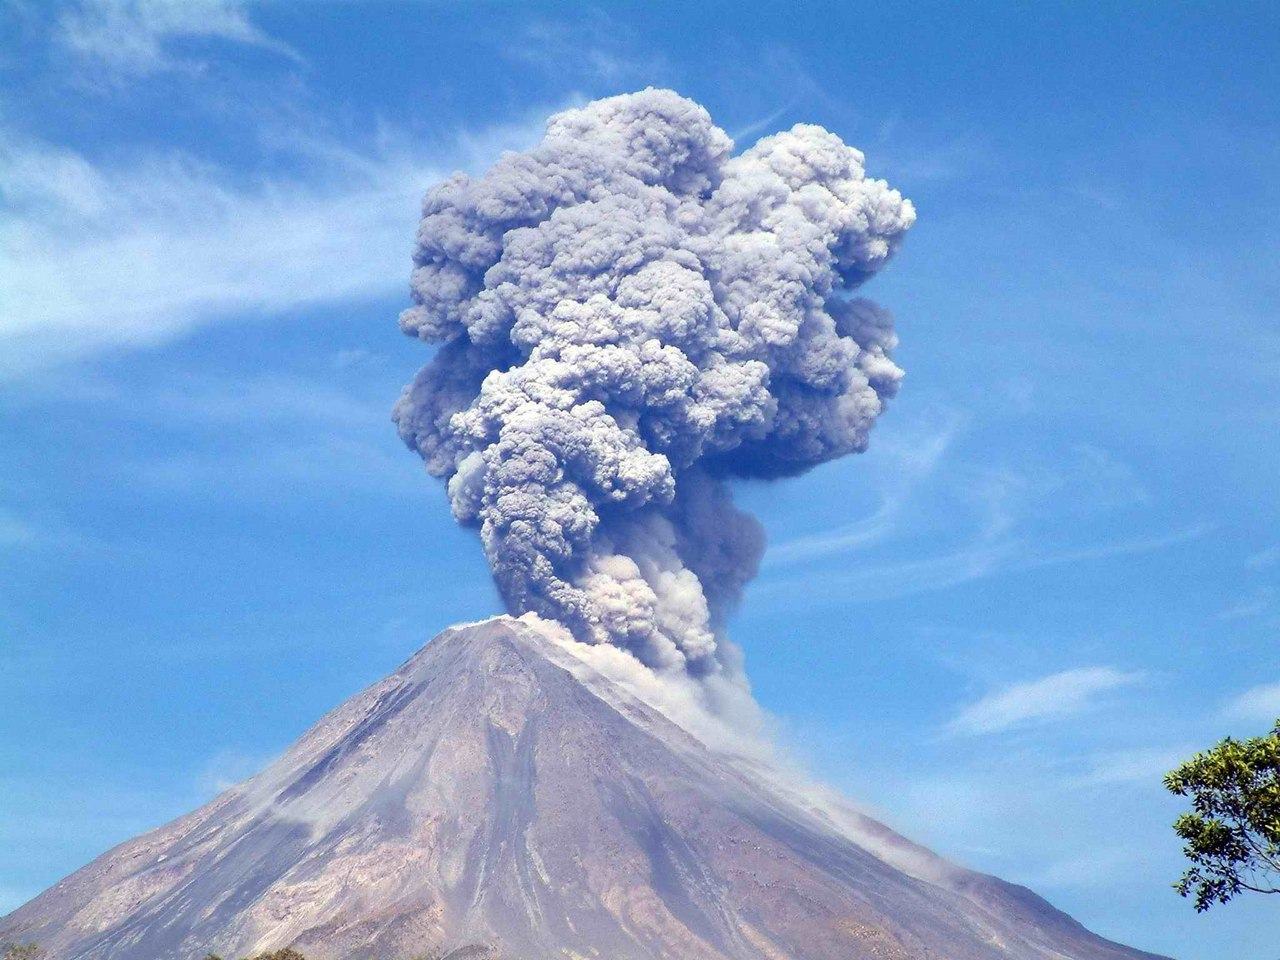 volcanic eruption, volcanic eruption january 2017, volcanic eruption video, volcanic eruption january 2017 video